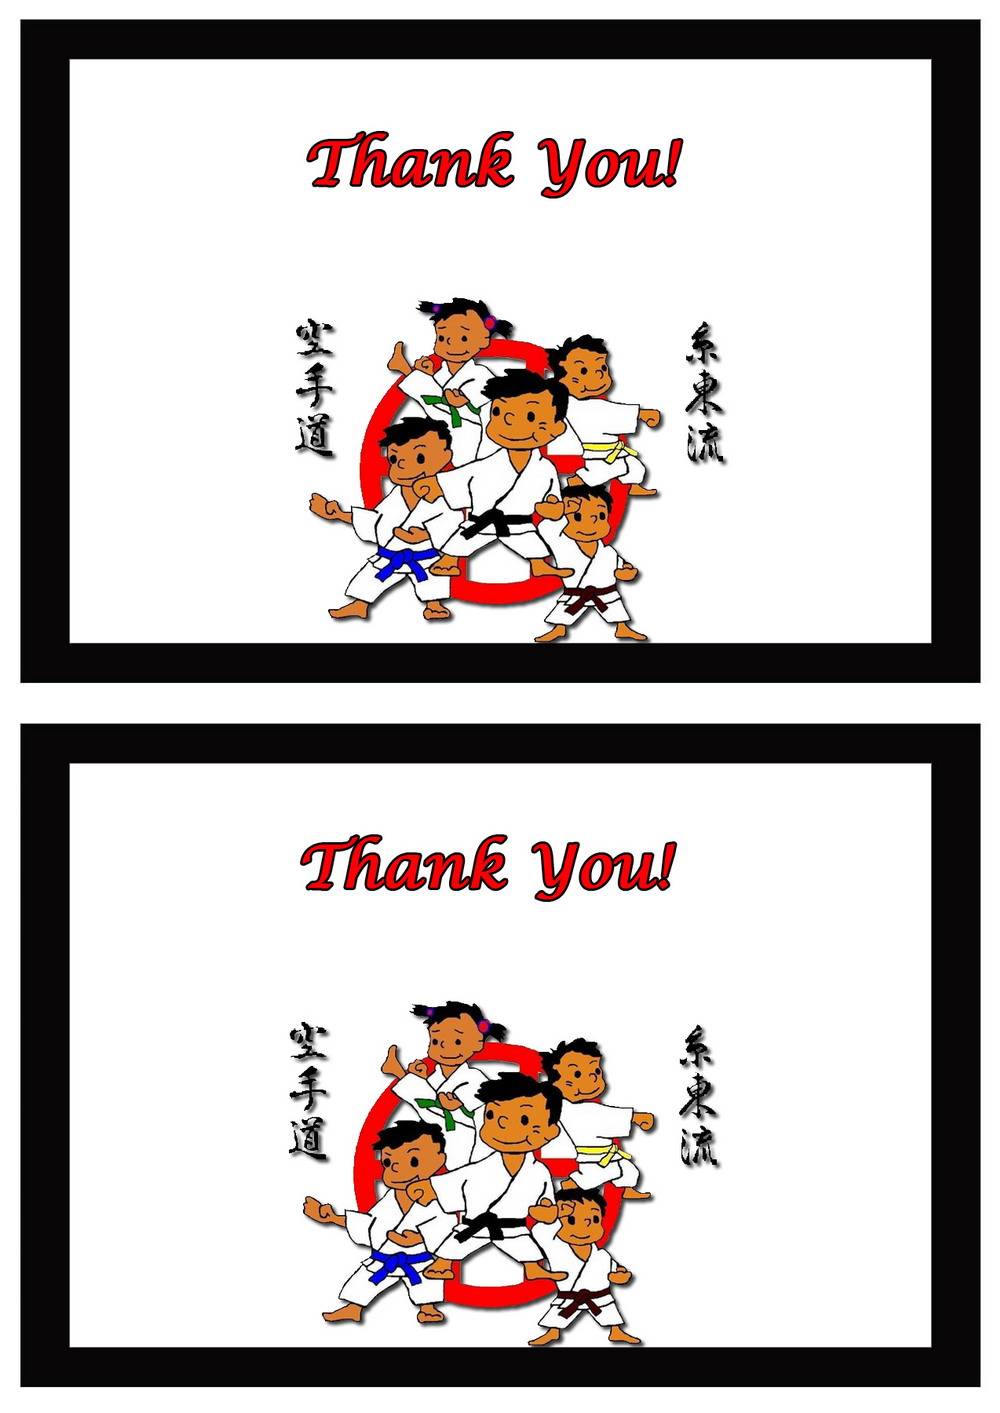 karate thank you cards